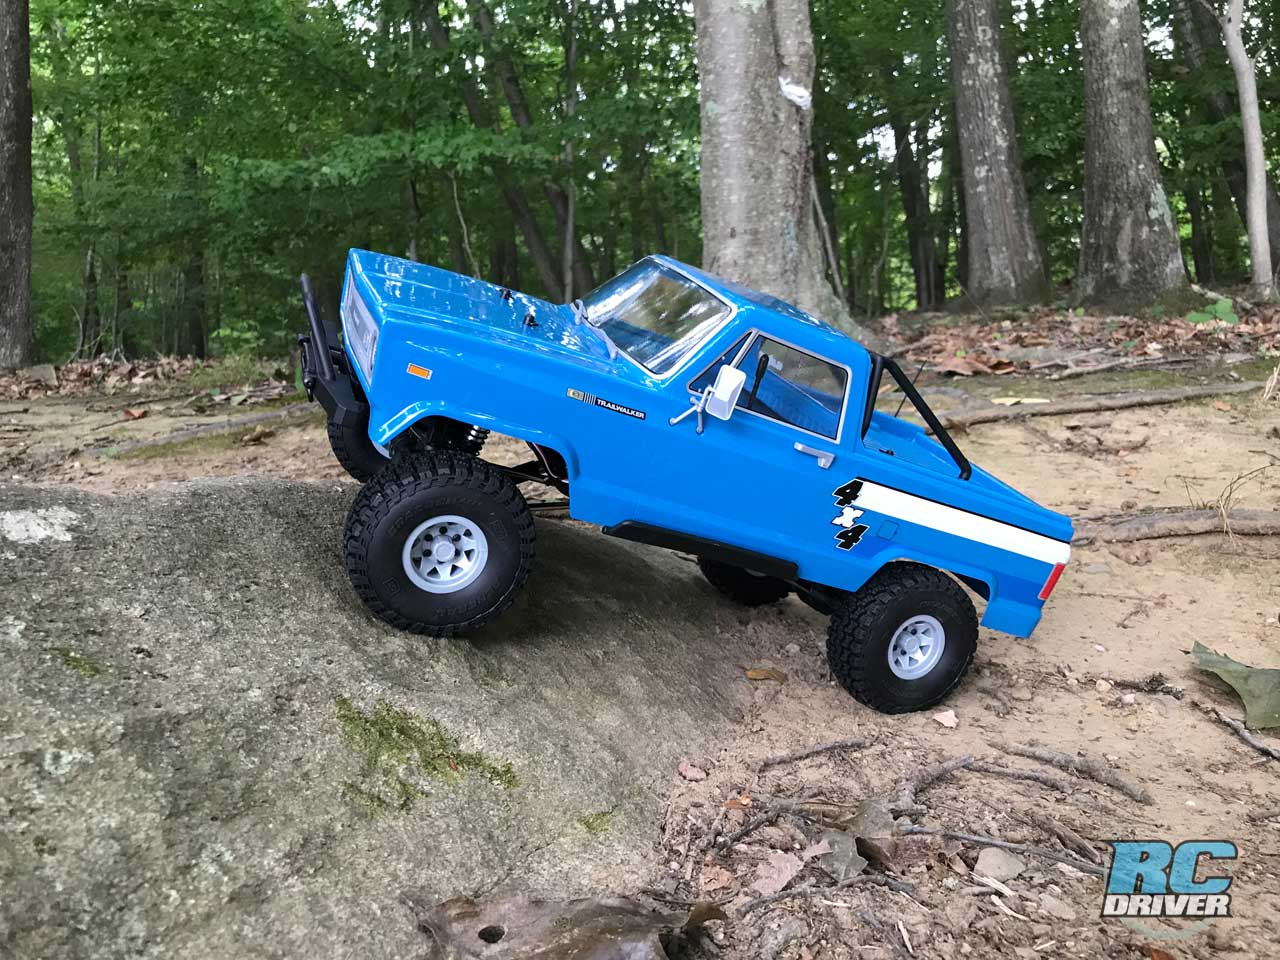 Element RC Enduro Trailwalker 4x4 RTR Truck Review